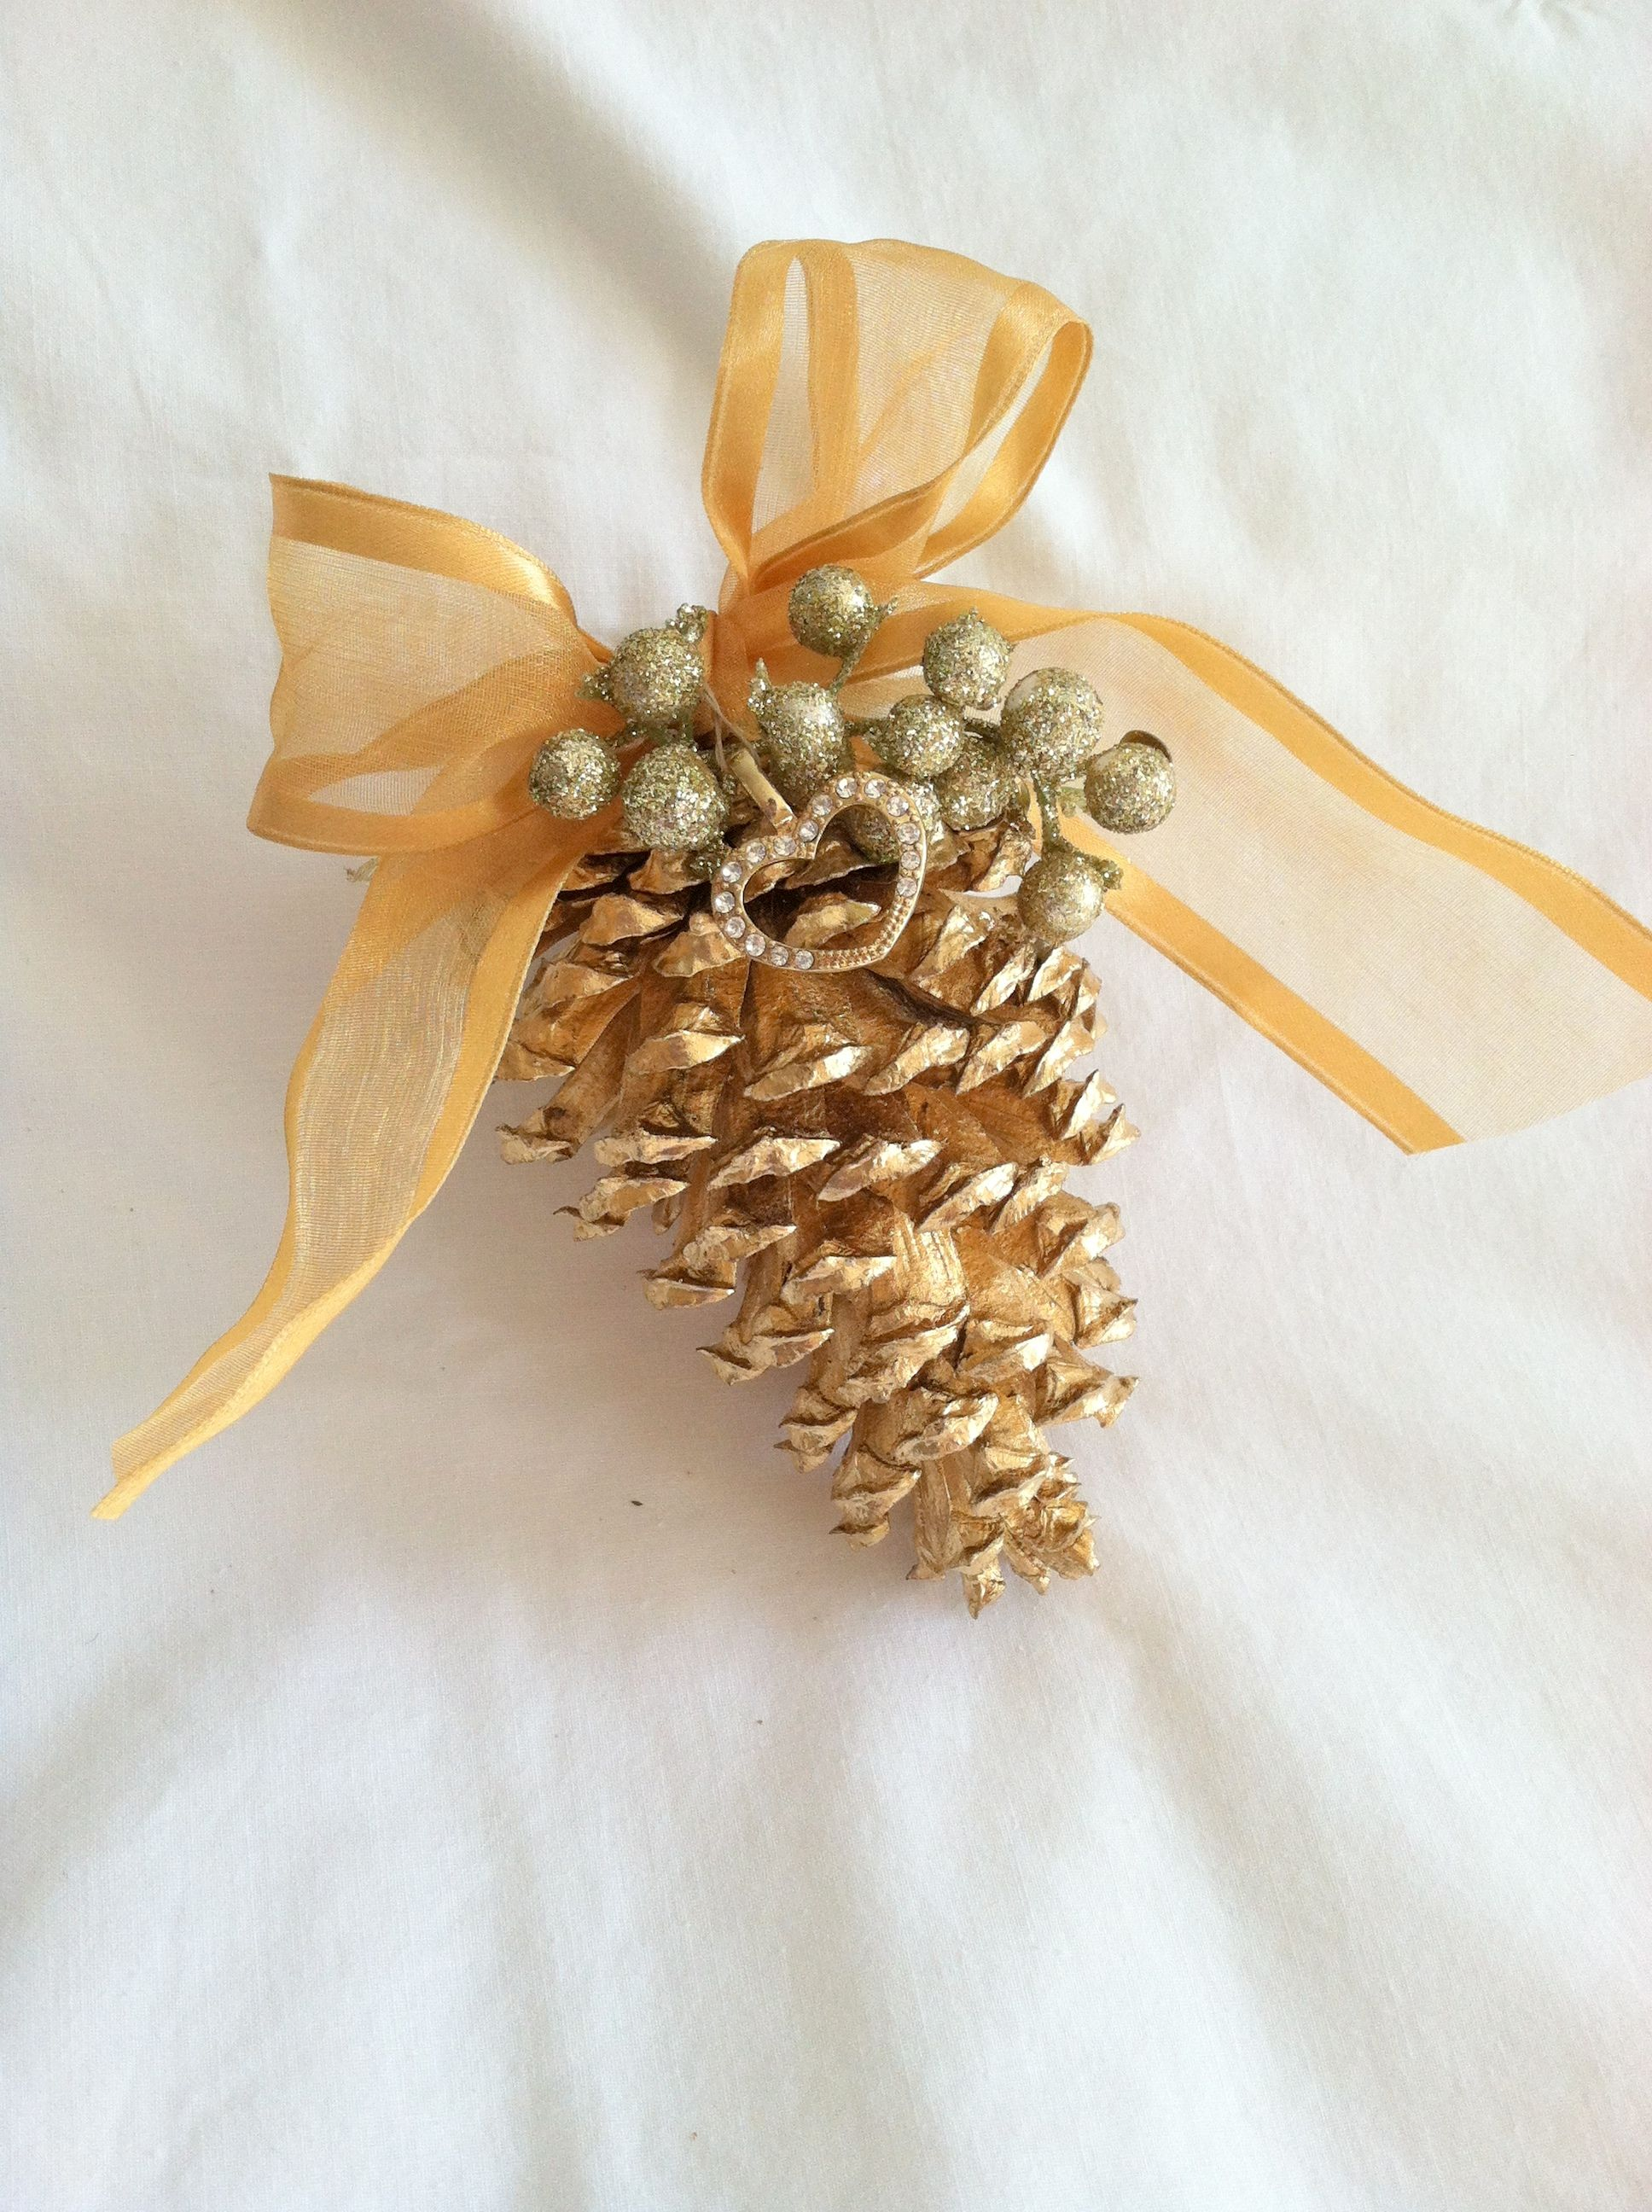 pine cone ornament christmas crafts pinterest. Black Bedroom Furniture Sets. Home Design Ideas